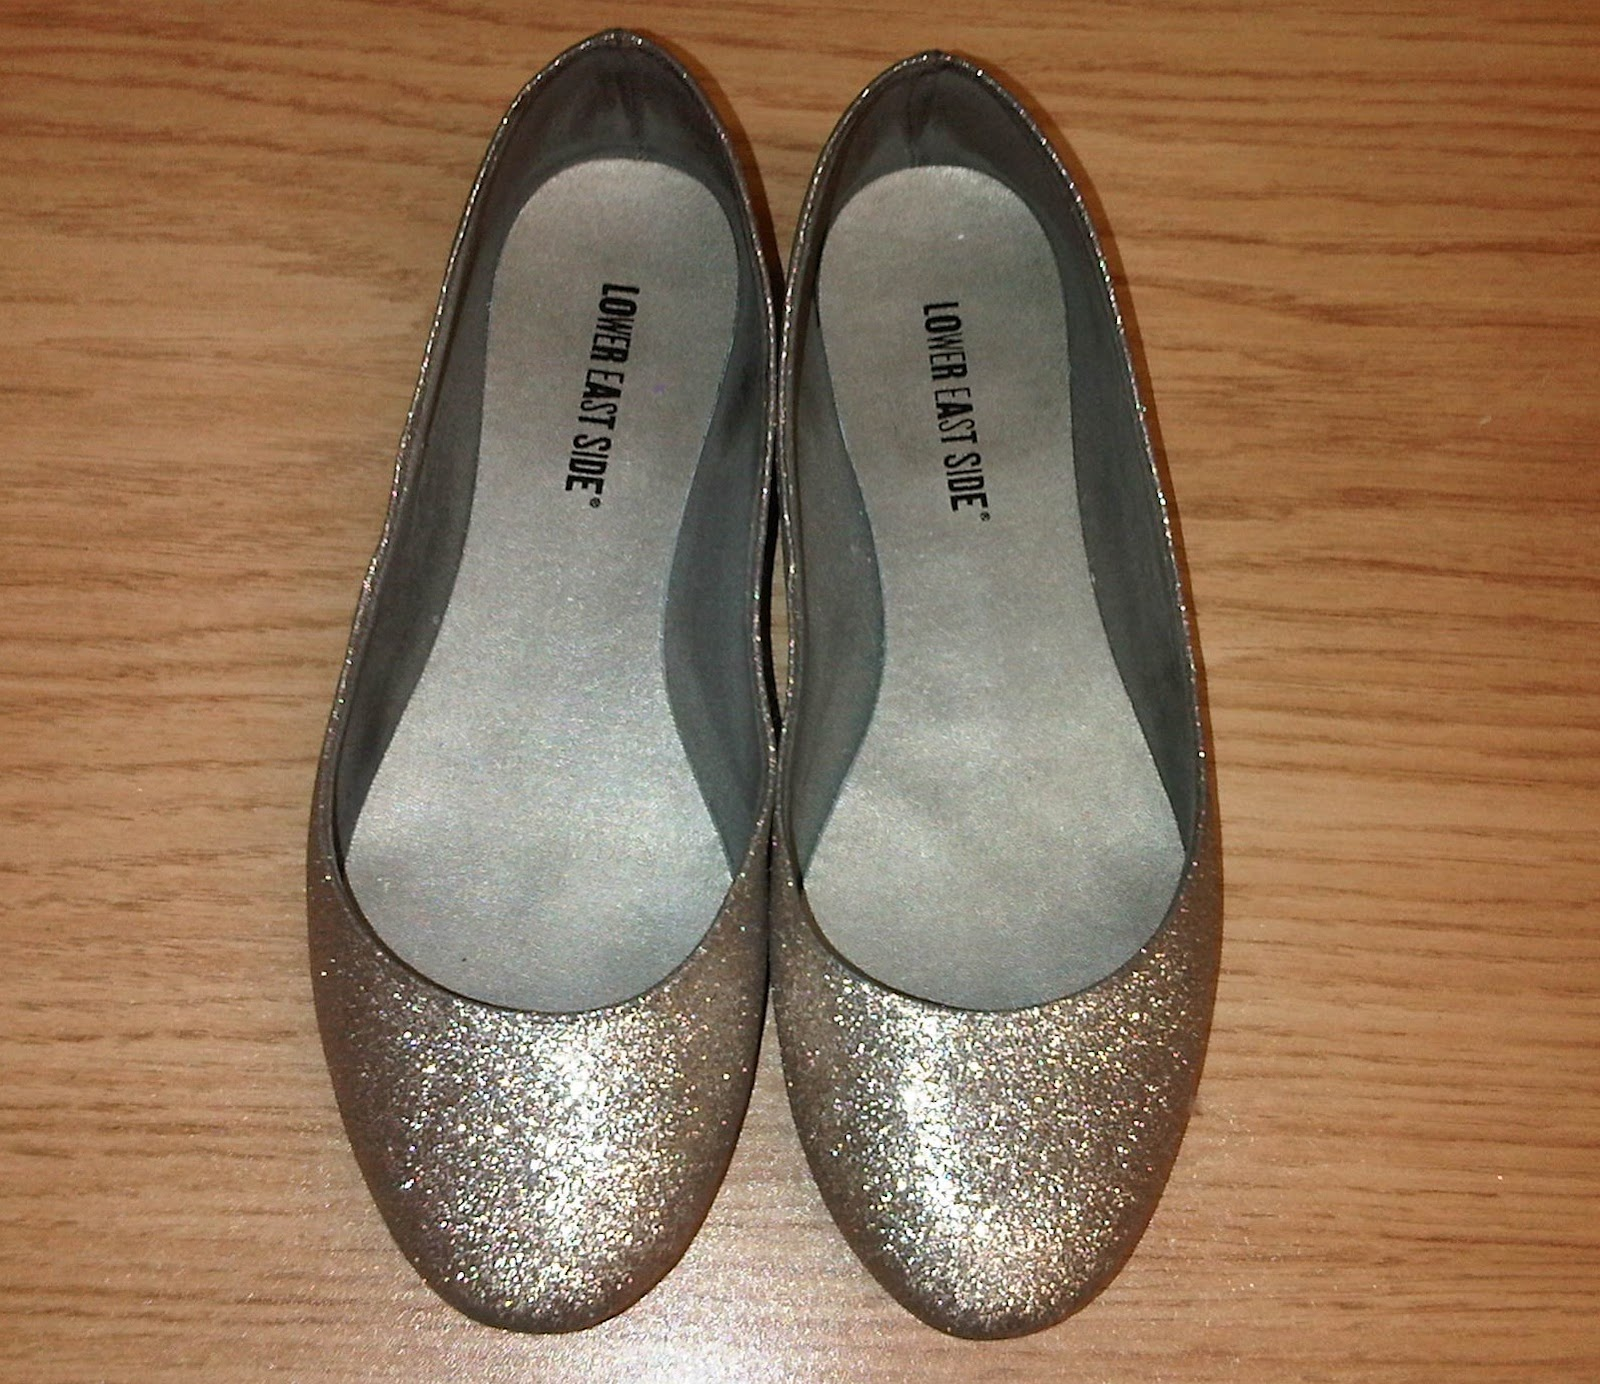 Obsessed Vol 1 My Payless Gold Glitter Flats